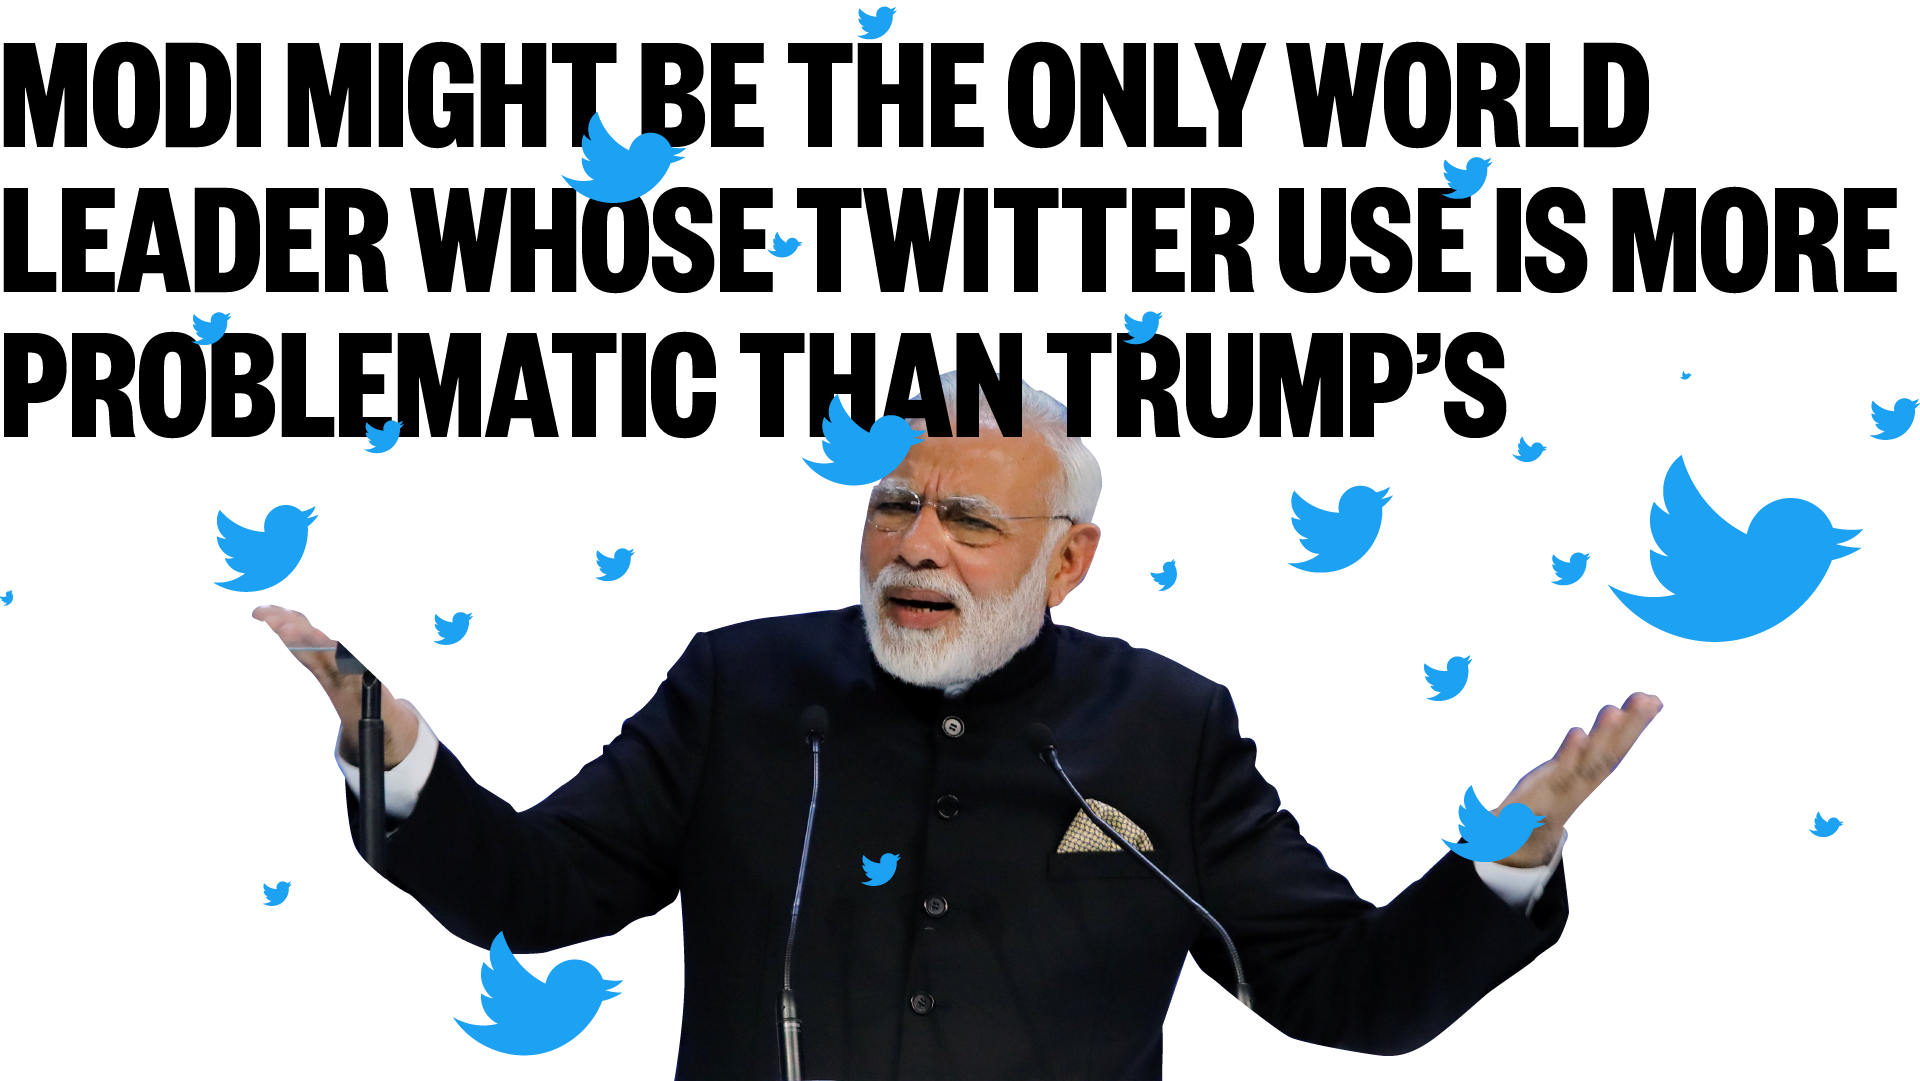 Modi might be the only world leader whose Twitter use is more problematic than Trump's